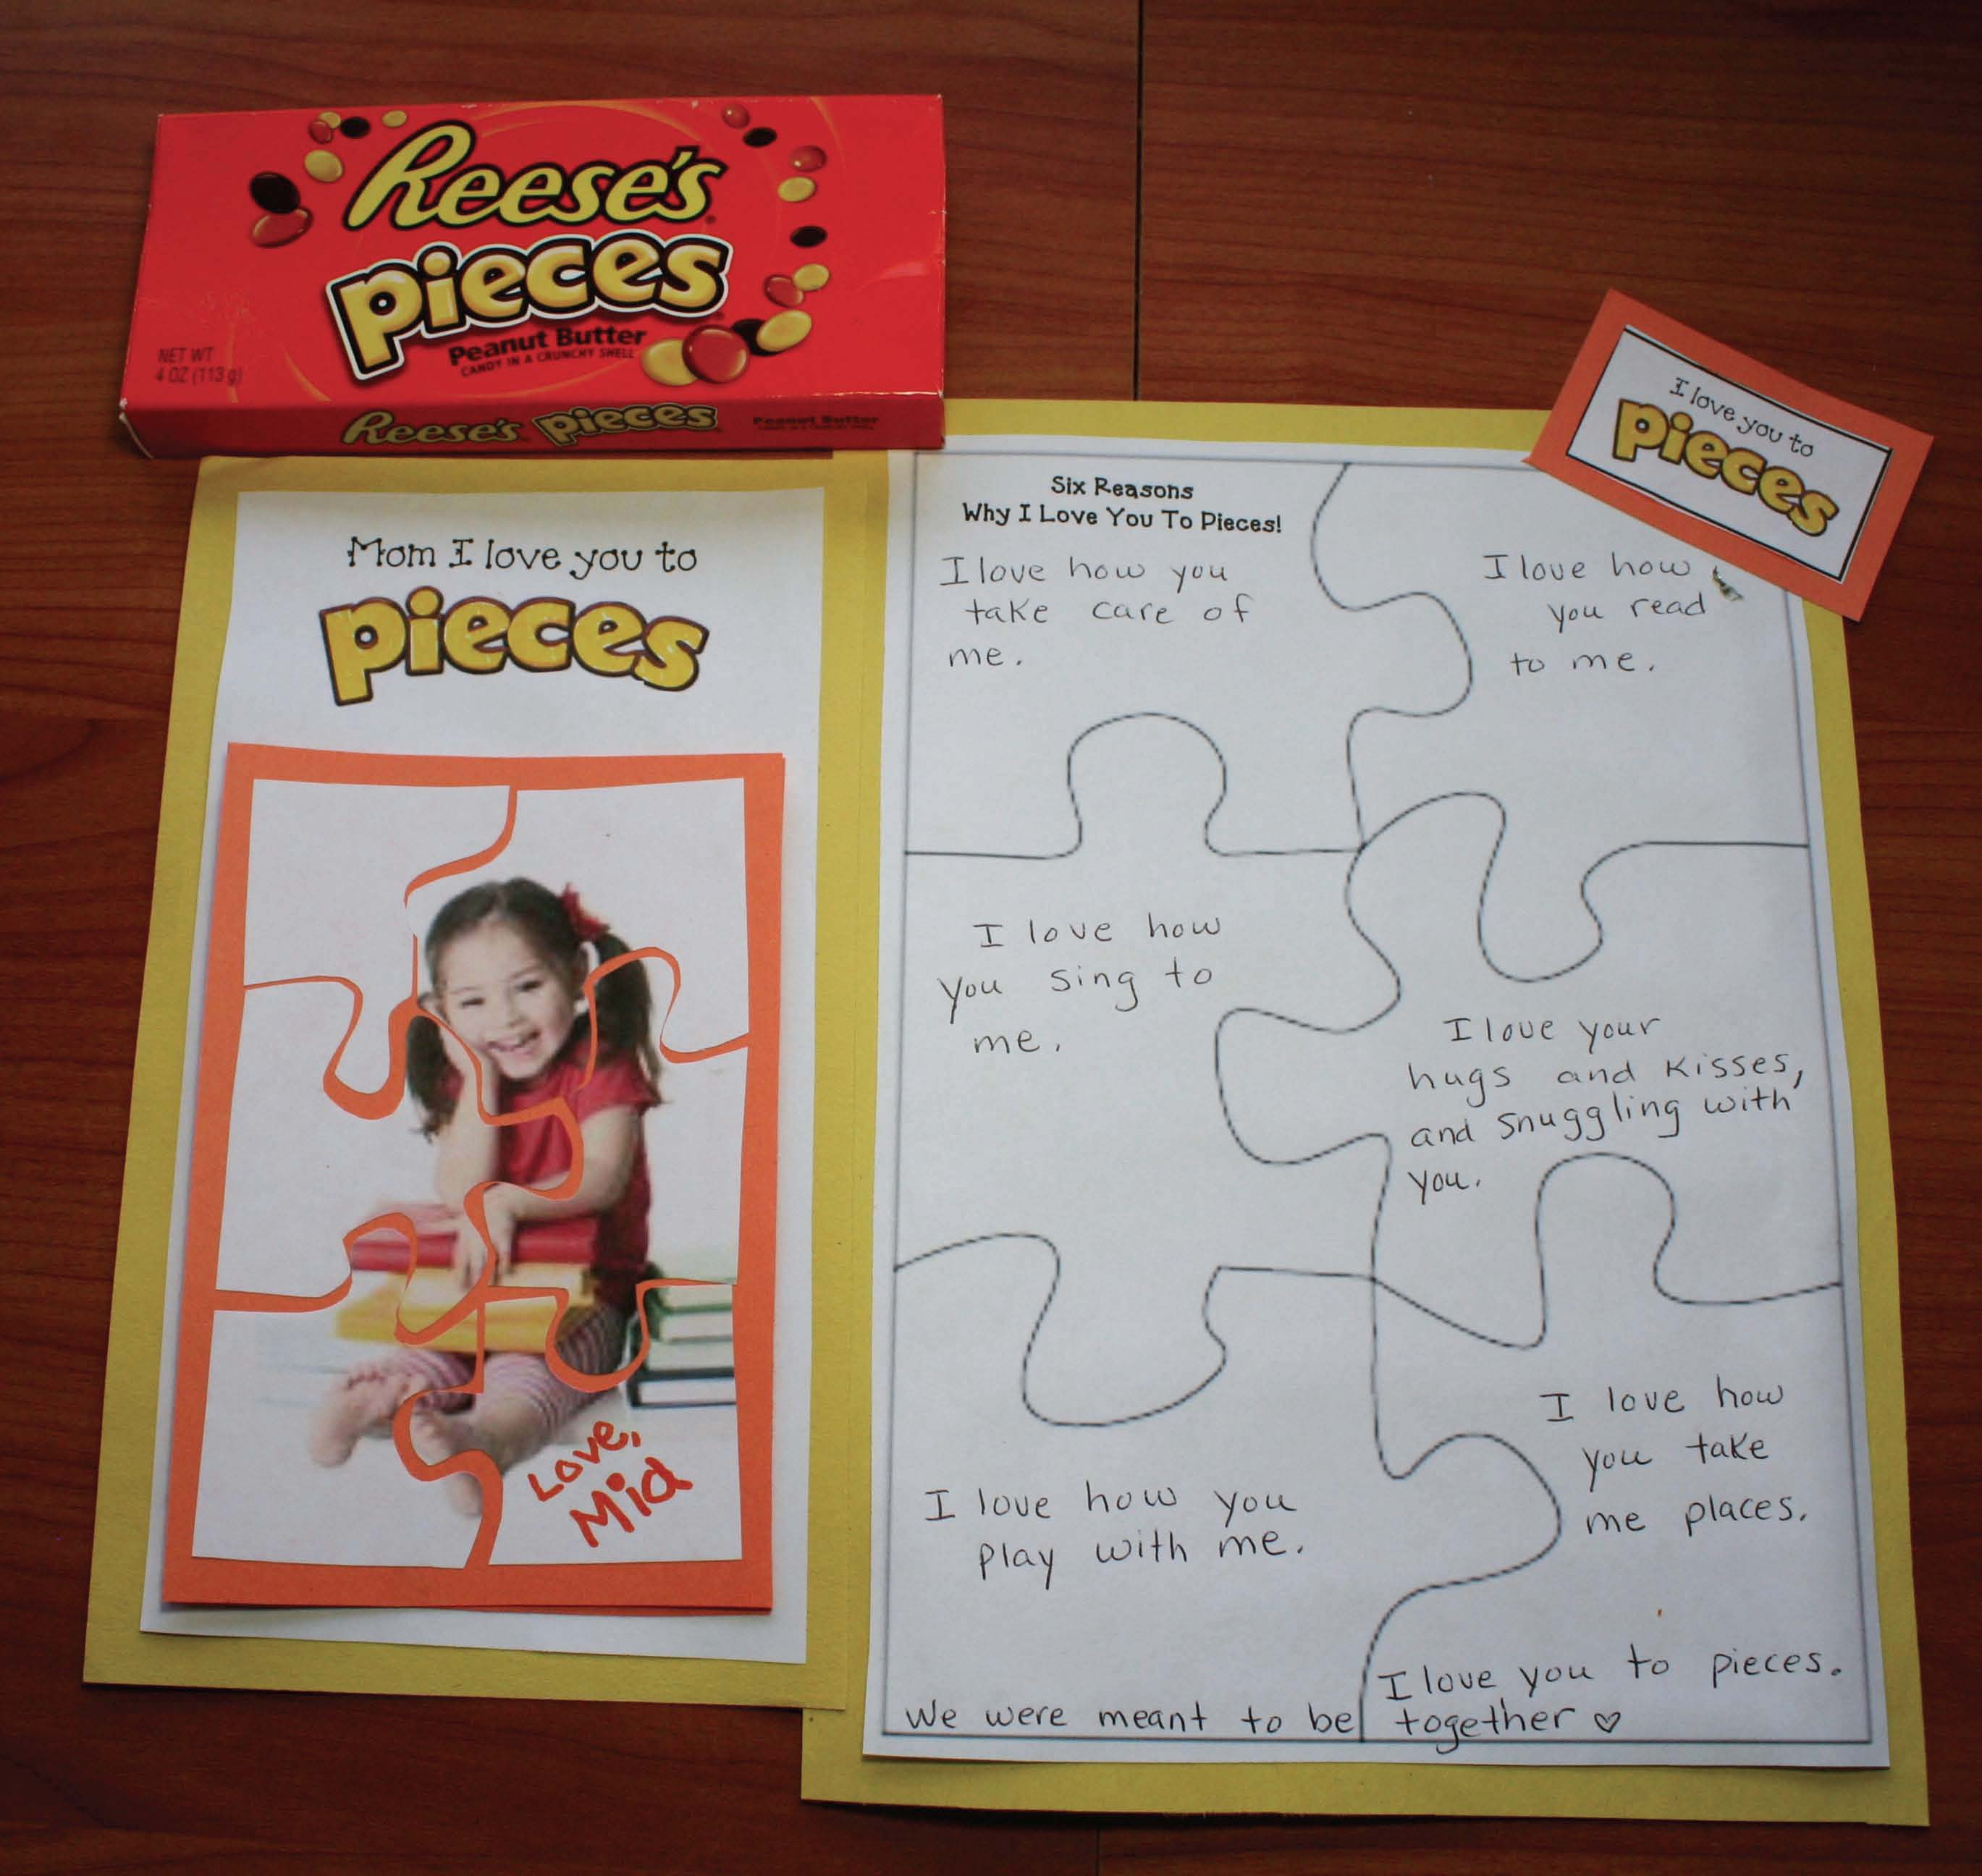 reeses pieces activities, i love you to pieces, puzzle activities, puzzle crafts, end of the year gifts for kids, mother's day activities, ideas for gifts for mothers day, mothers day cards, mothers day activities, mothers day crafts, fathers day activities, fathers day crafts, fathers day gifts, grandparents day activities, grandparents day crafts, grandparents day cards,